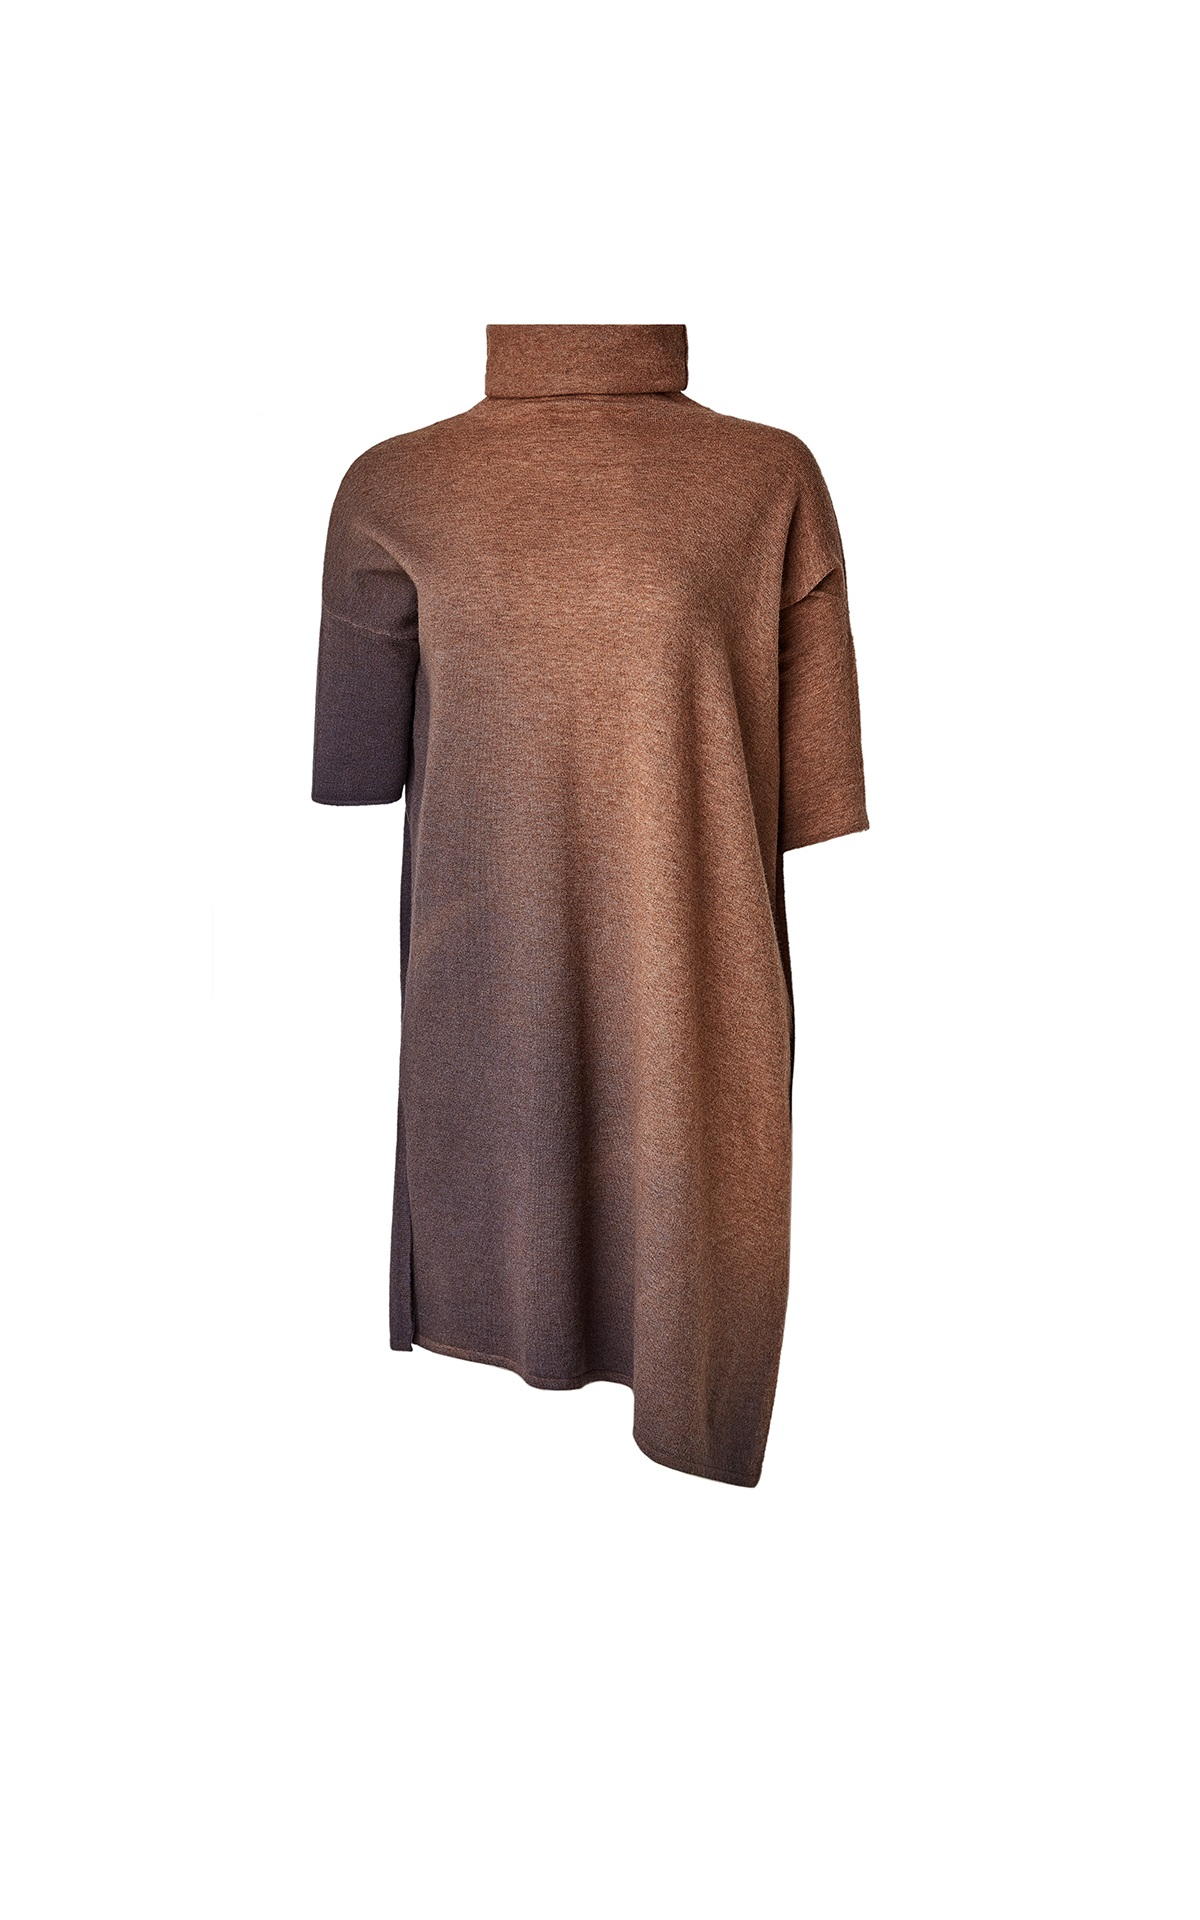 Gradient brown long sweater Adolfo Dominguez